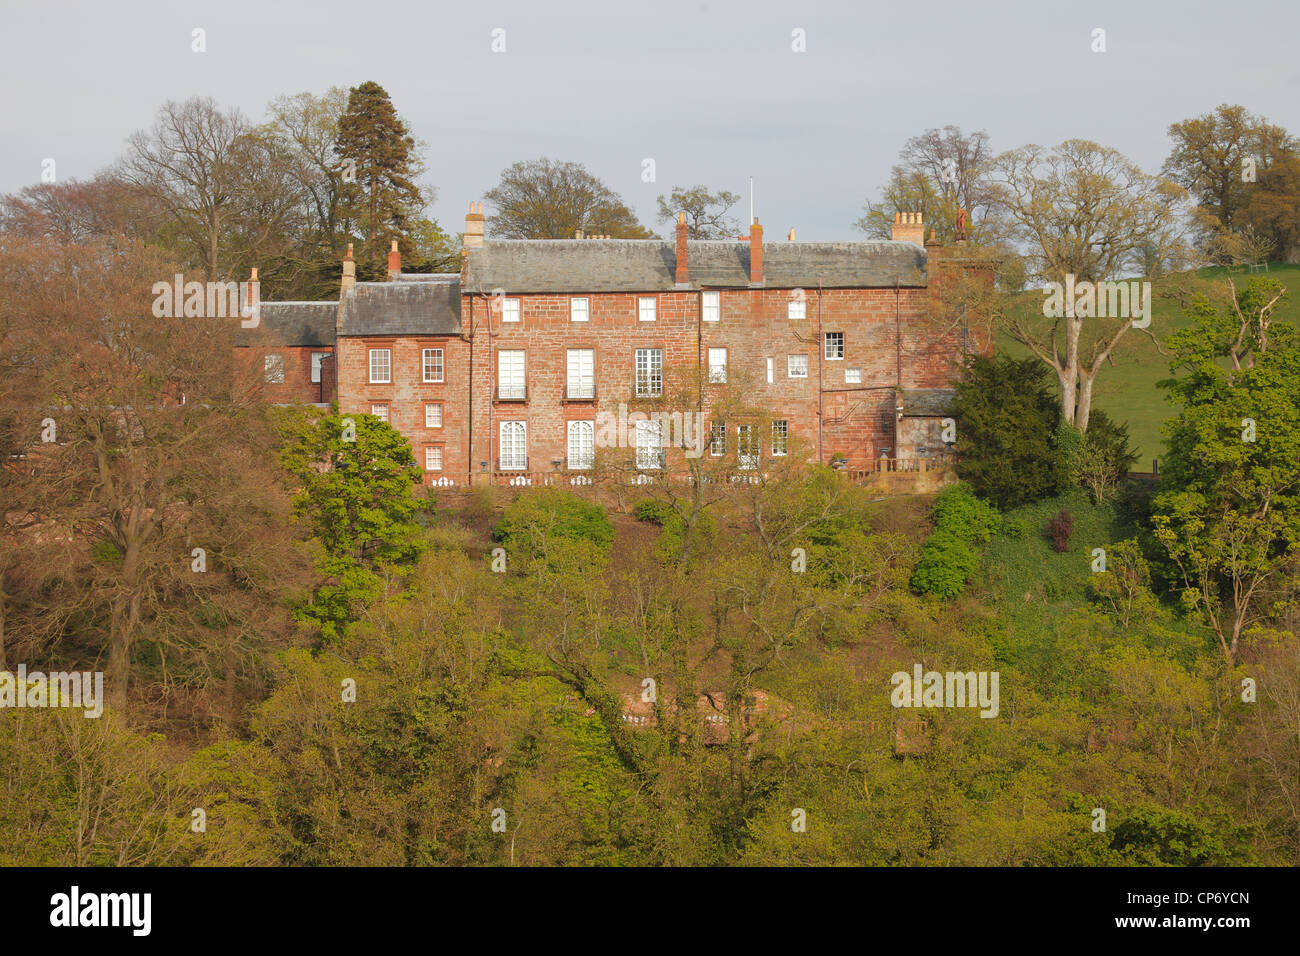 Corby Castle owned by Dr Edward Haughey, now Baron Ballyedmond, Great Corby near Wetheral, Carlisle, Cumbria, England. - Stock Image